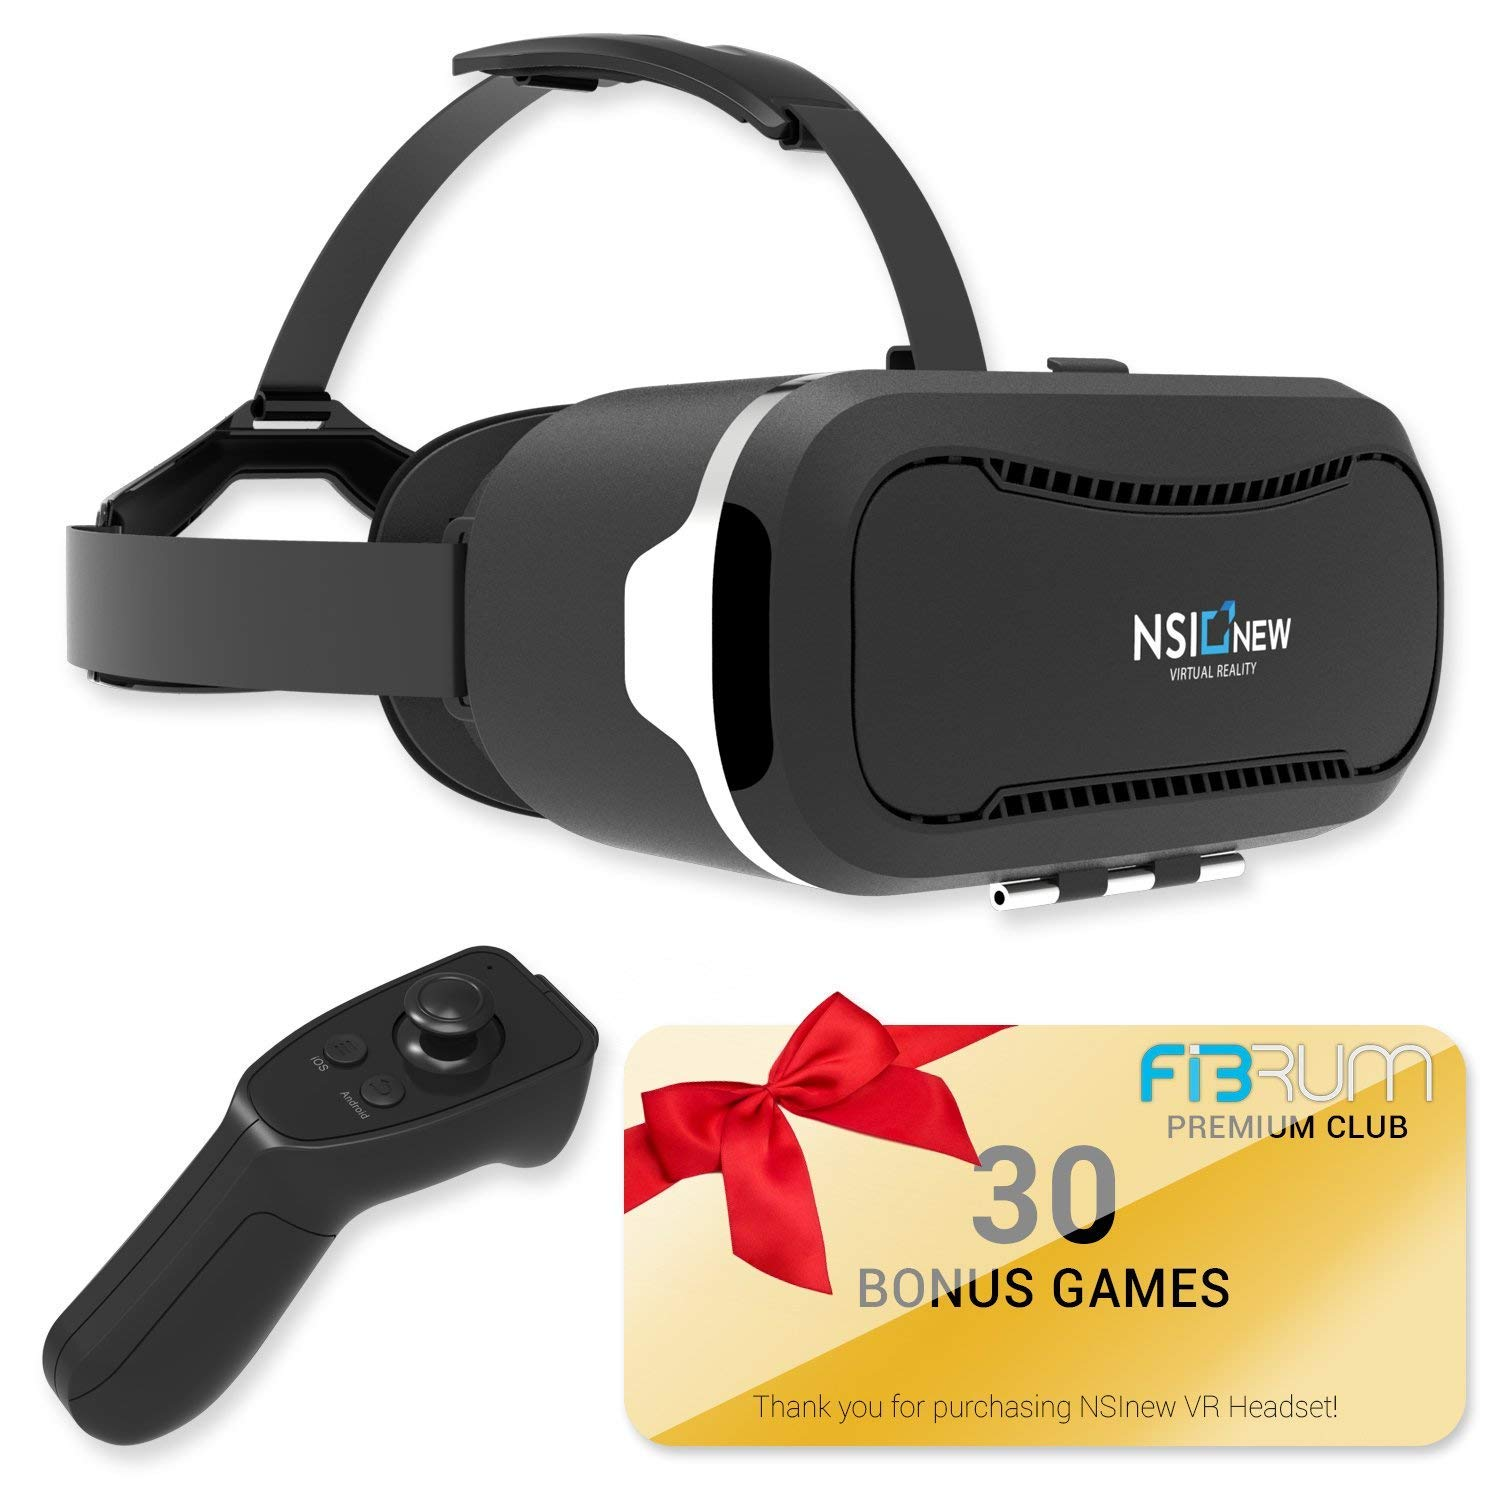 Virtual Reality Headset Over 30 VR Apps & Bluetooth Remote Included with VR Headset - Compatible with Apple & Android Phones from 4-6' Size -360° VR Goggles for 3D Games NSInew vr-30564